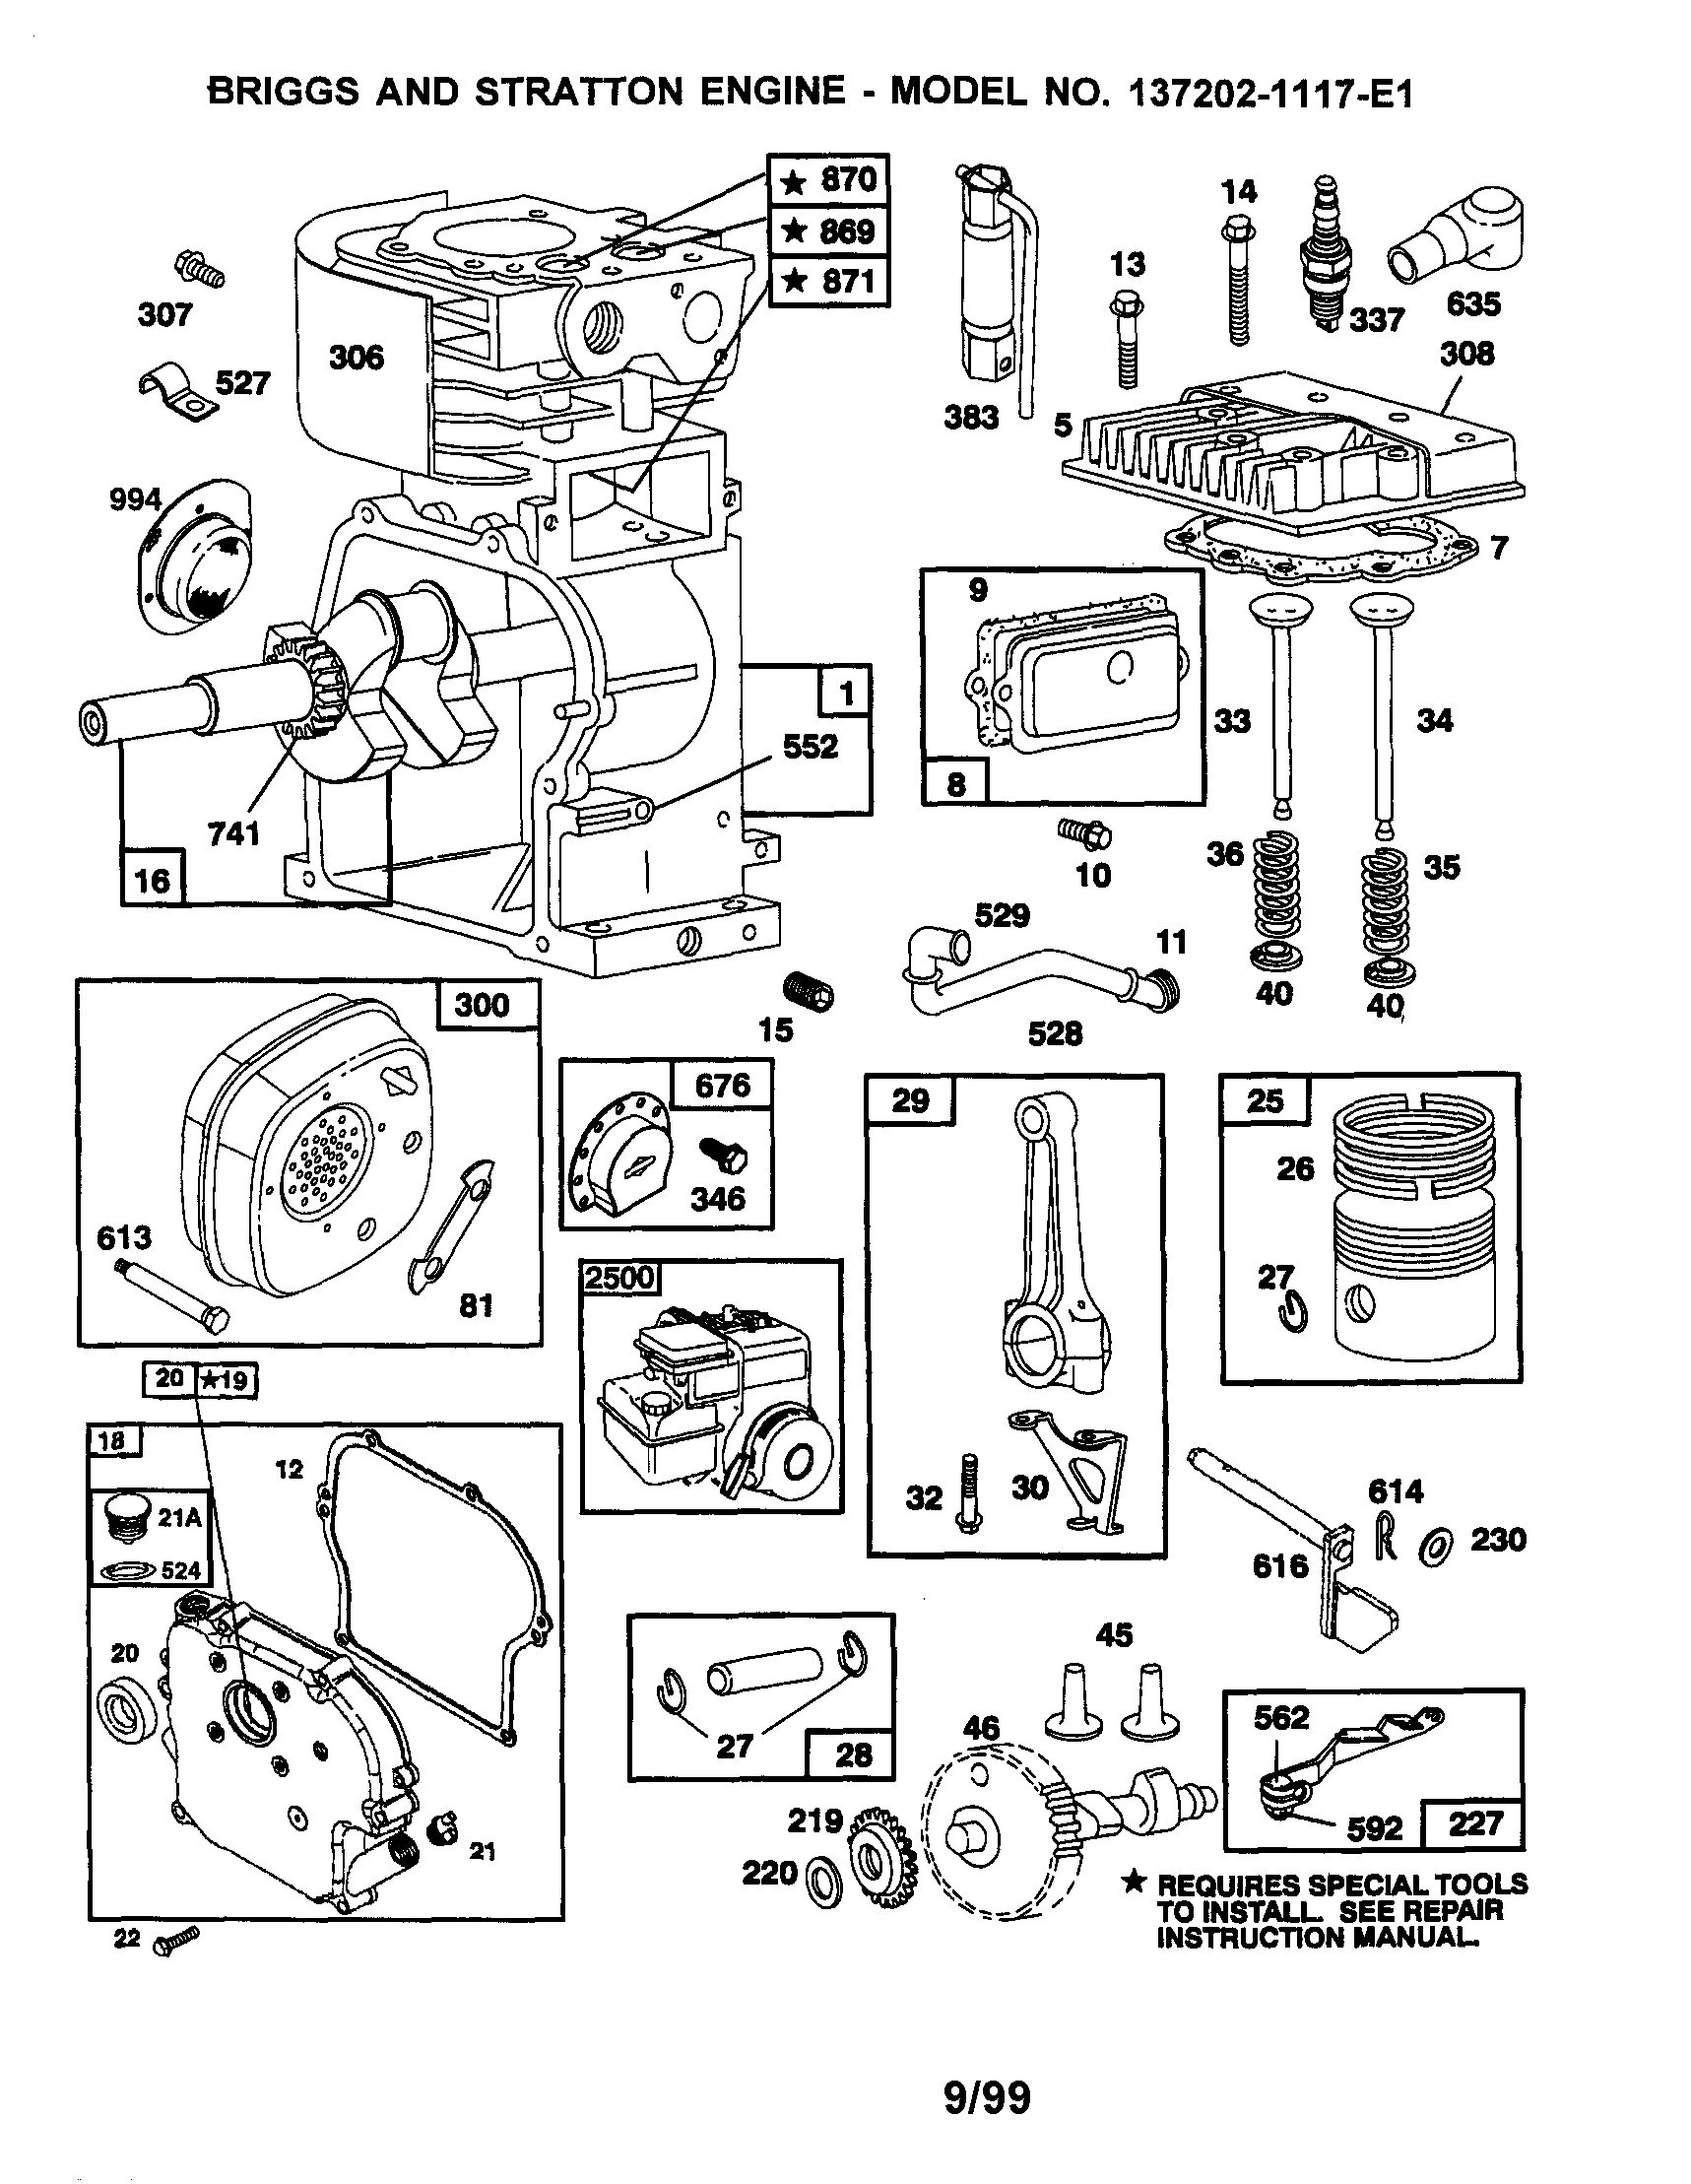 Briggs Stratton Parts Diagram Simplicity 4212h 12 5hp Bs Hydro And 5 Hp Engine Along With Magnificent Breakdown Of